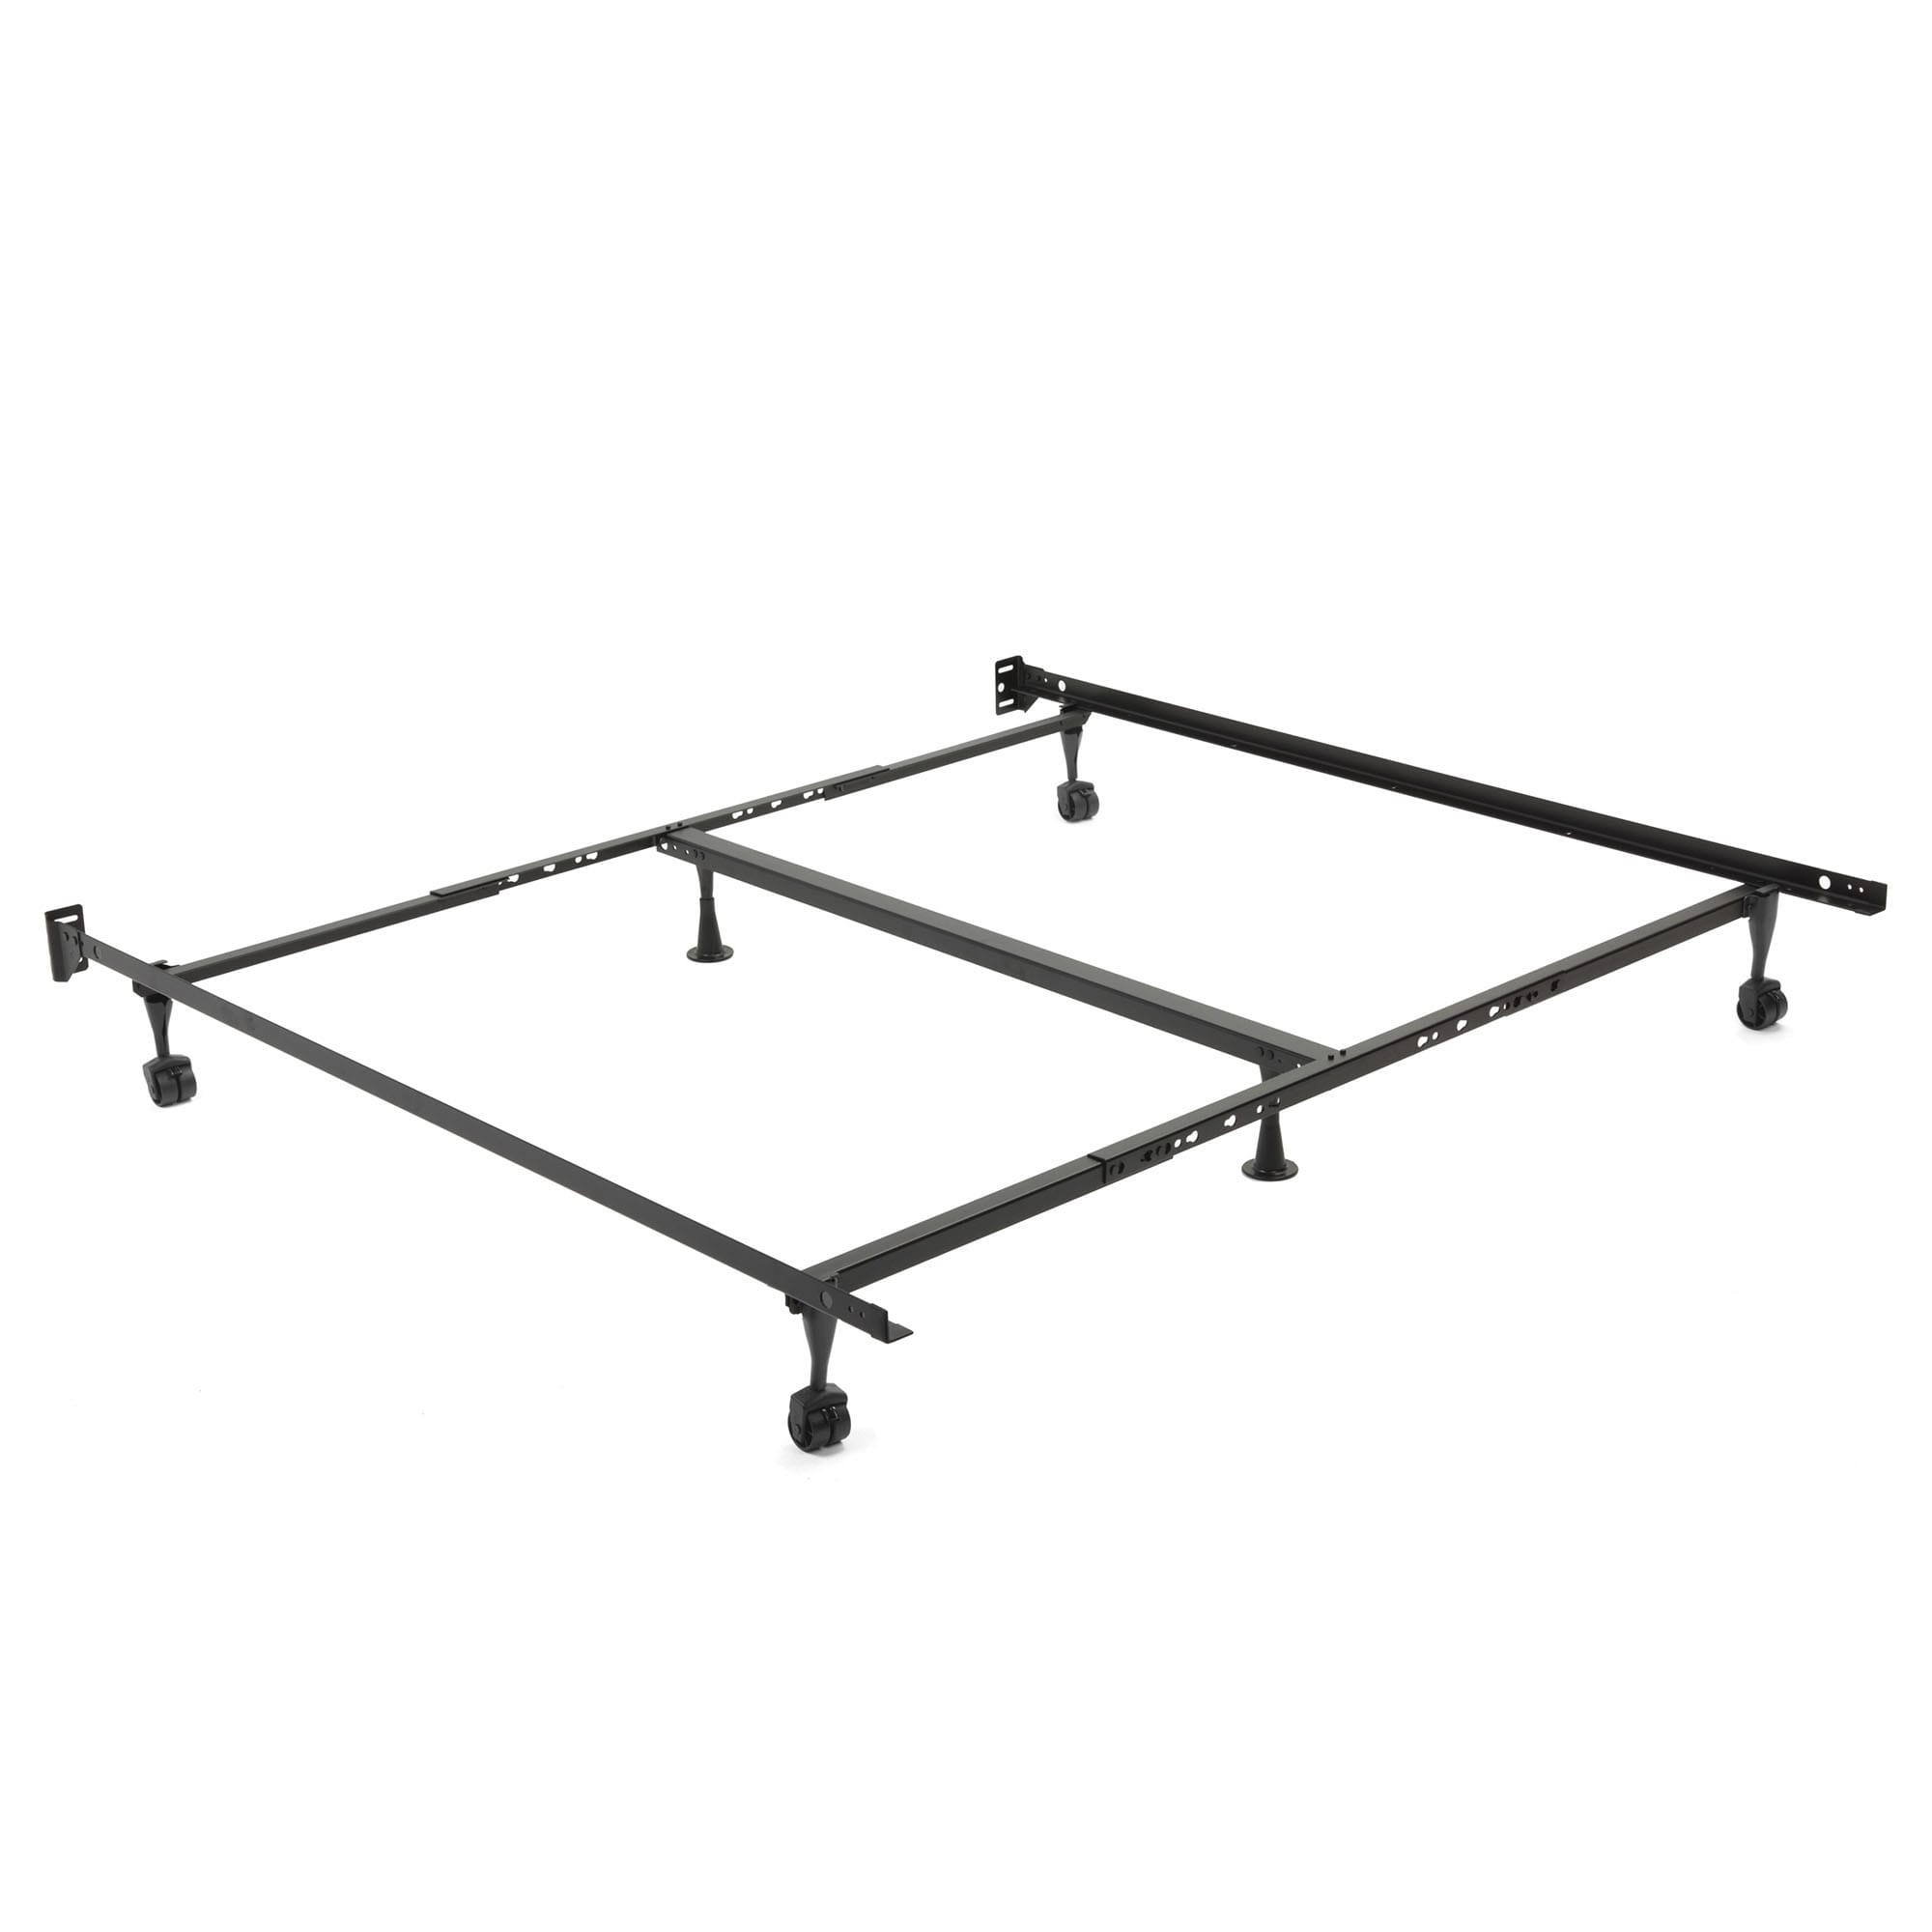 Restmore Adjustable K45R Center Support Bed Frame w/ Fixed Headboard ...